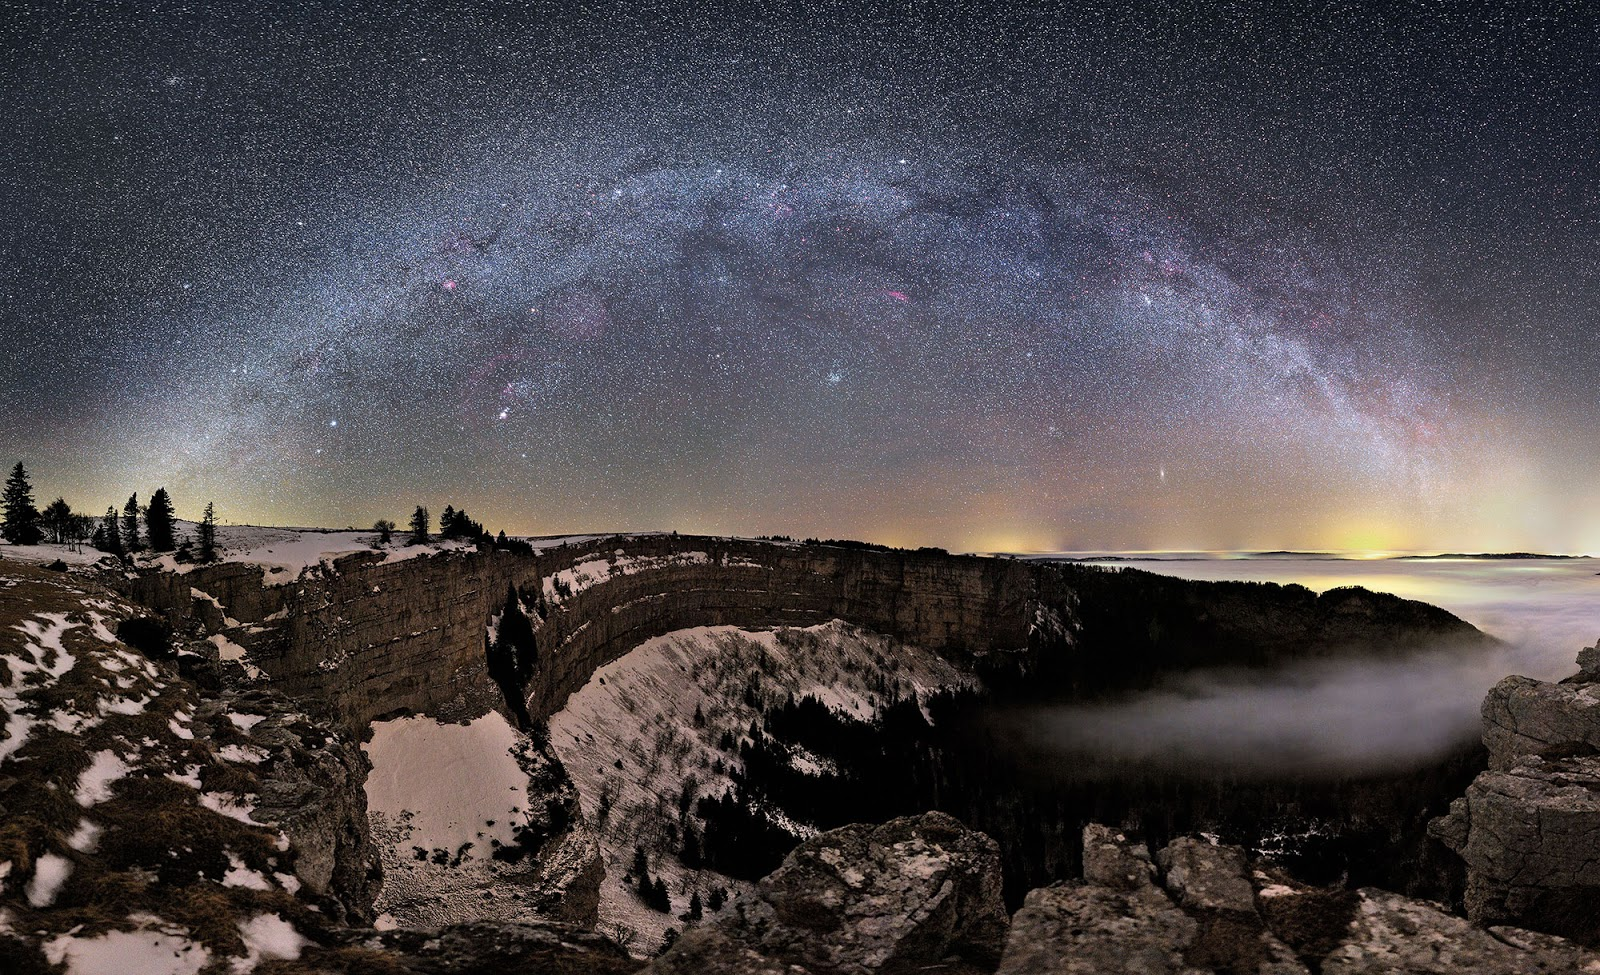 Milky Way Galaxy - Switzerland